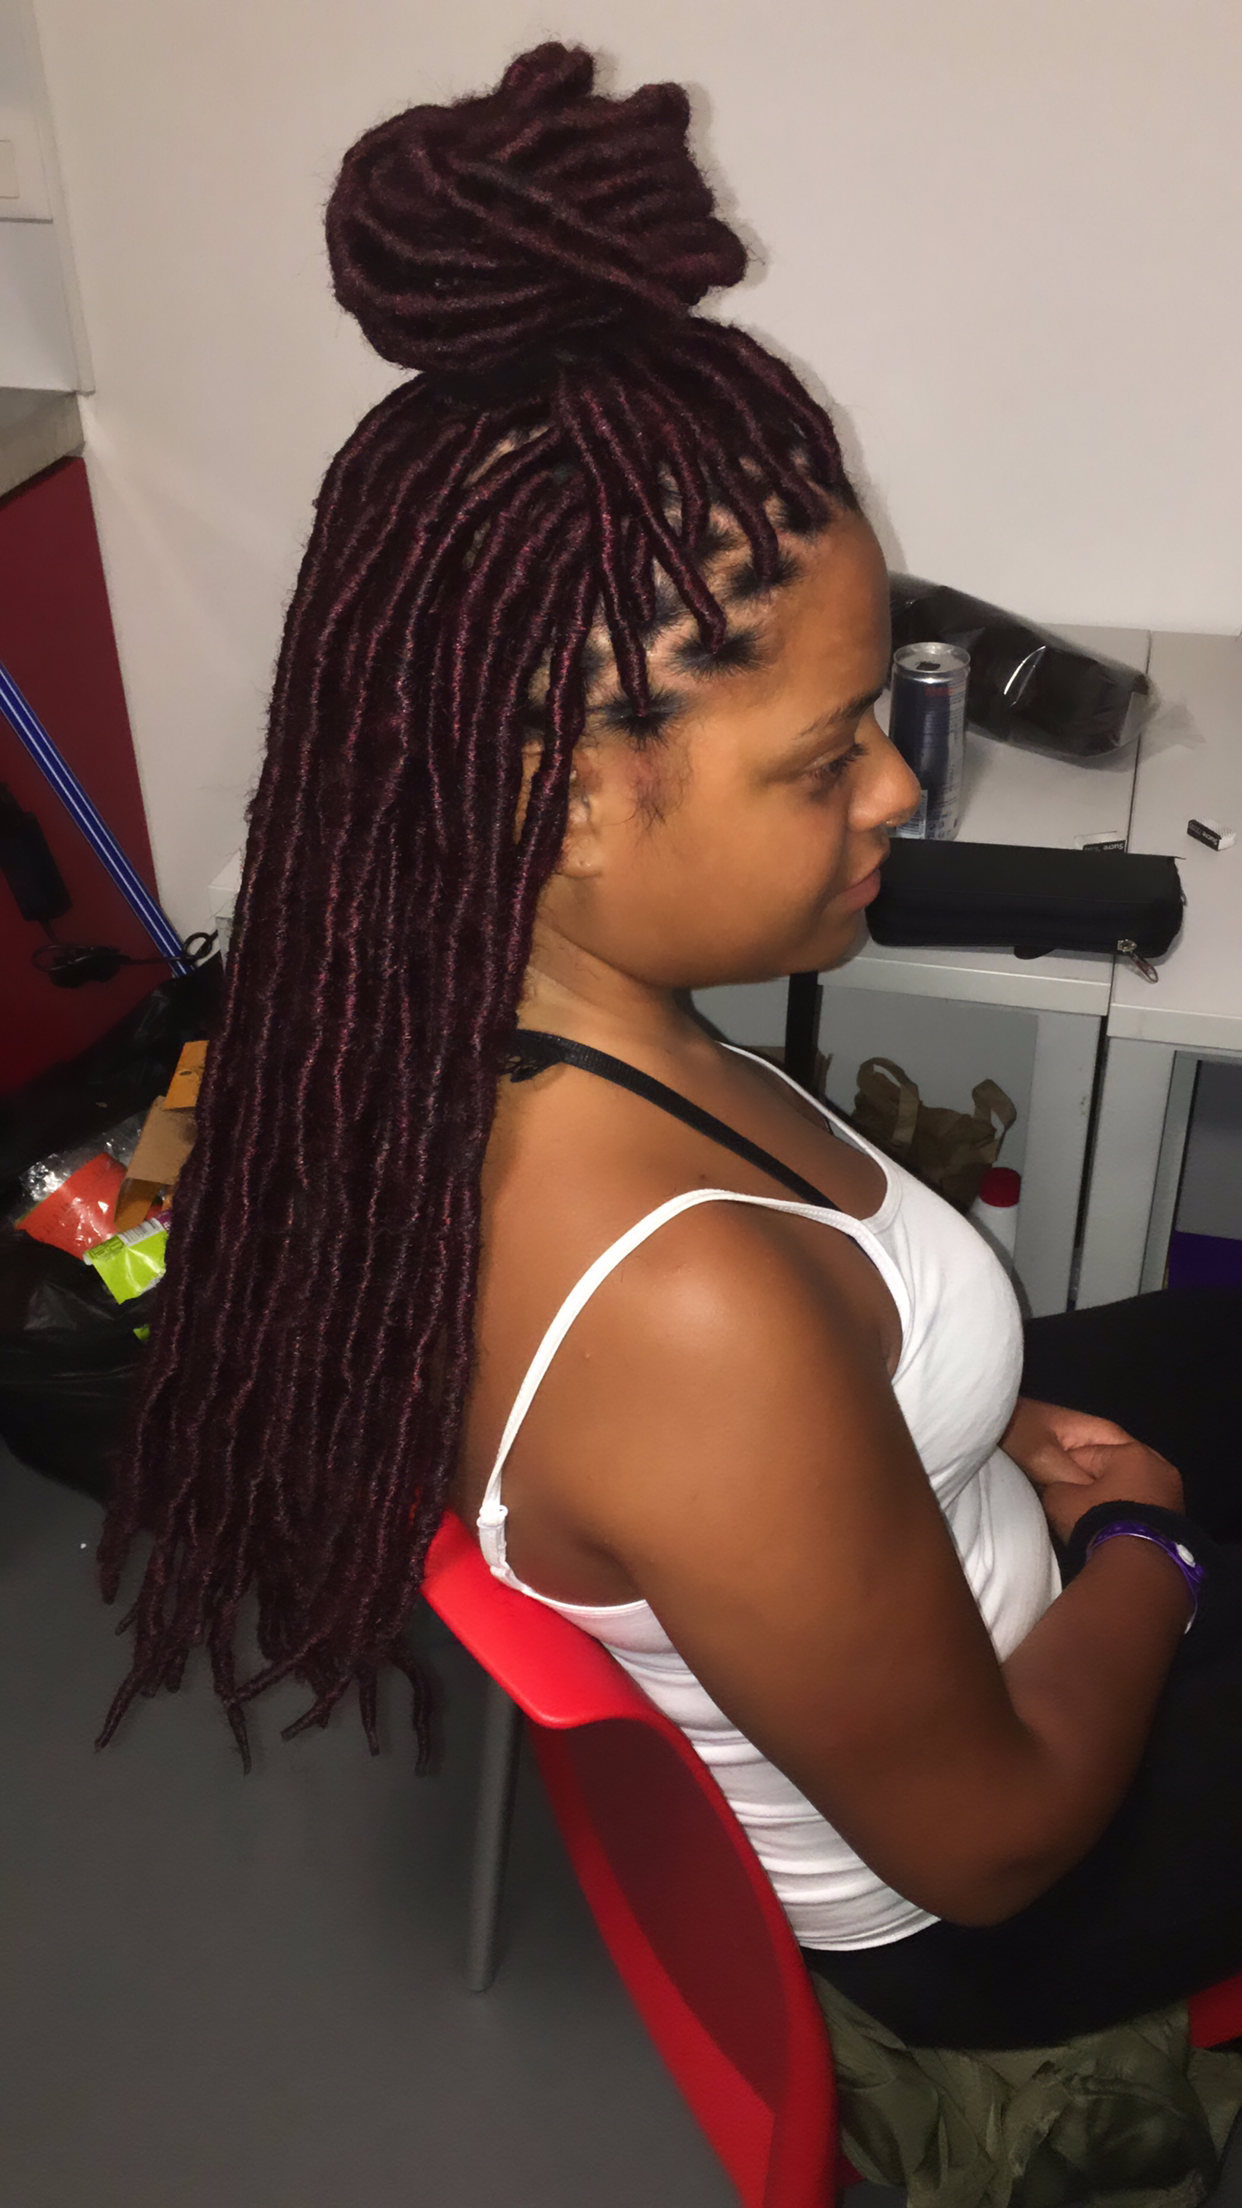 salon de coiffure afro tresse tresses box braids crochet braids vanilles tissages paris 75 77 78 91 92 93 94 95 DDCHQQMV